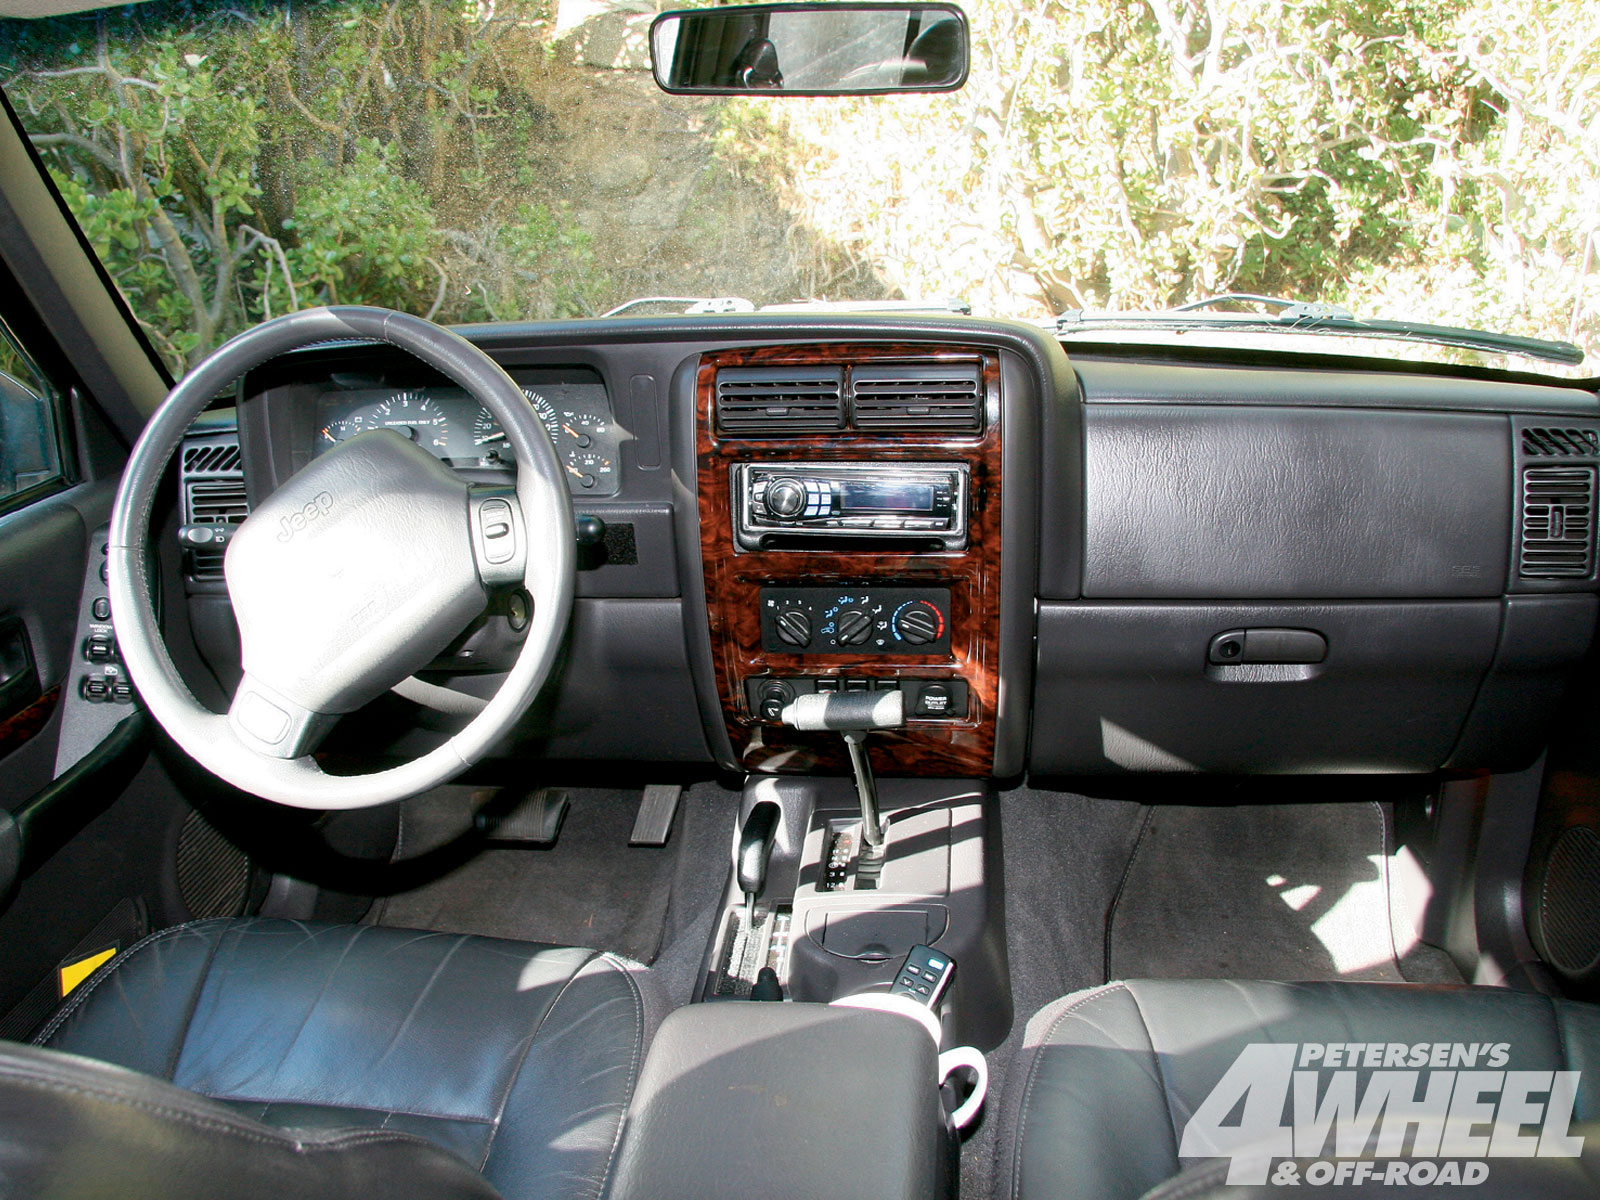 1991 Jeep Cherokee xj – pictures, information and specs - Auto ...